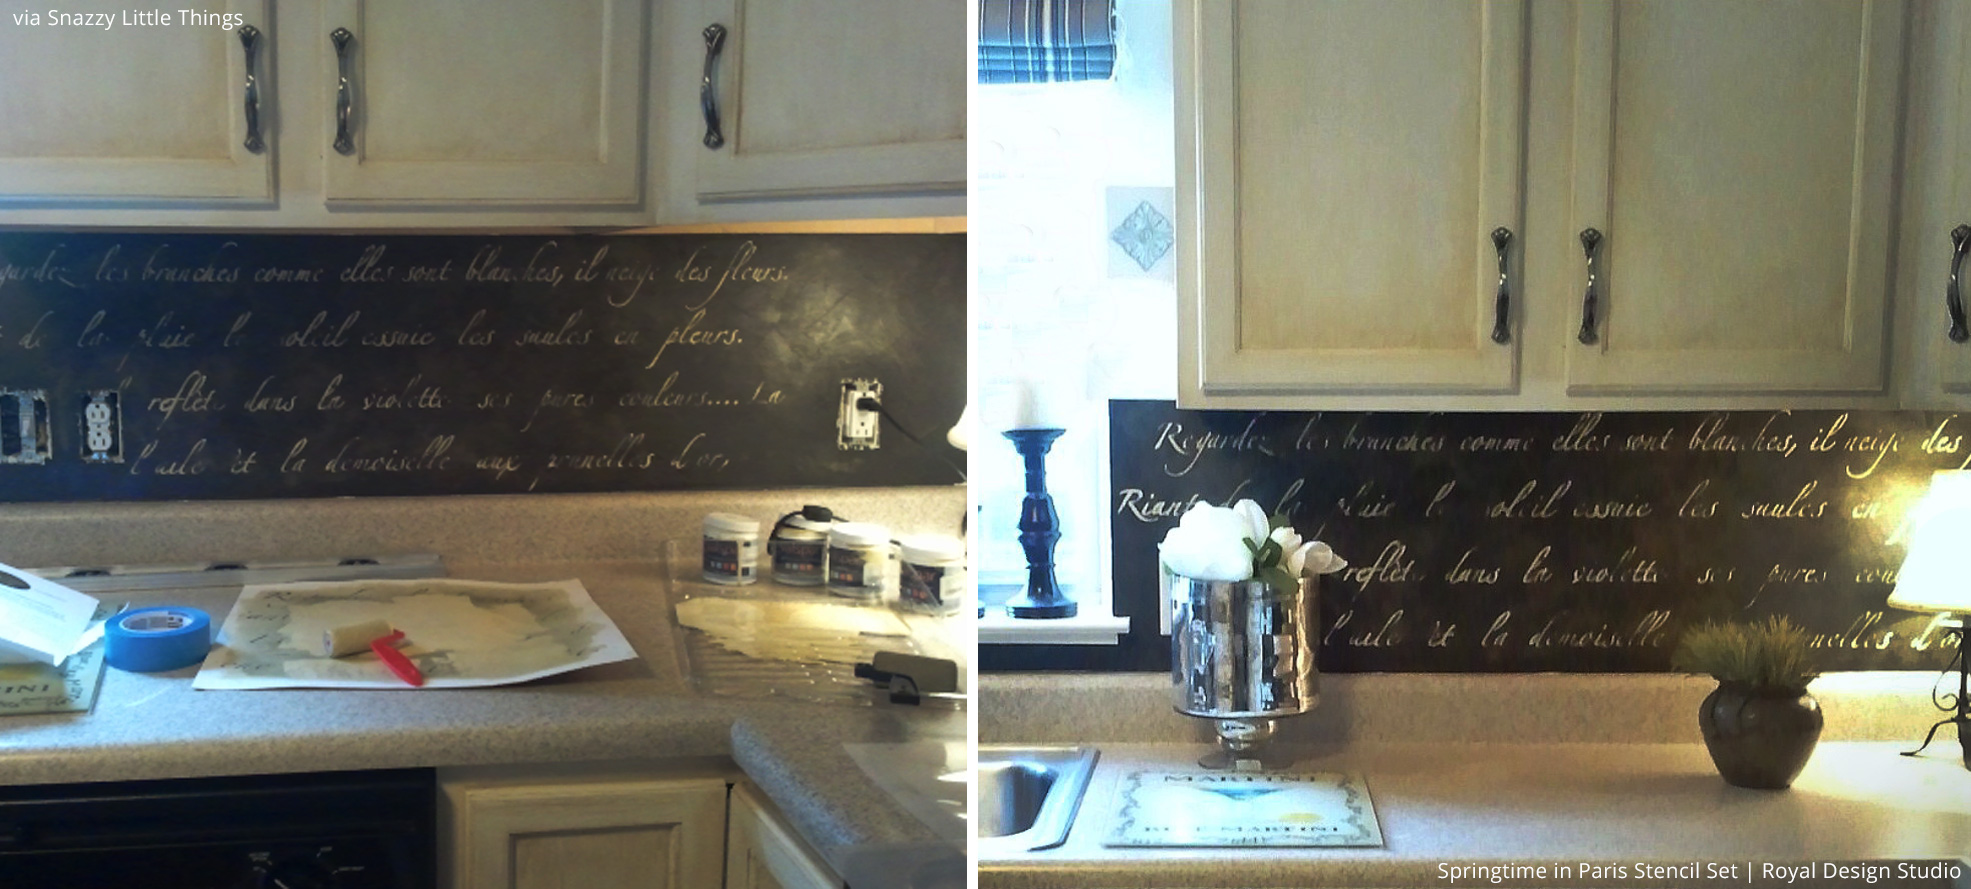 Paint your kitchen backsplash with lettering stencils - Royal Design Studio wall stencils